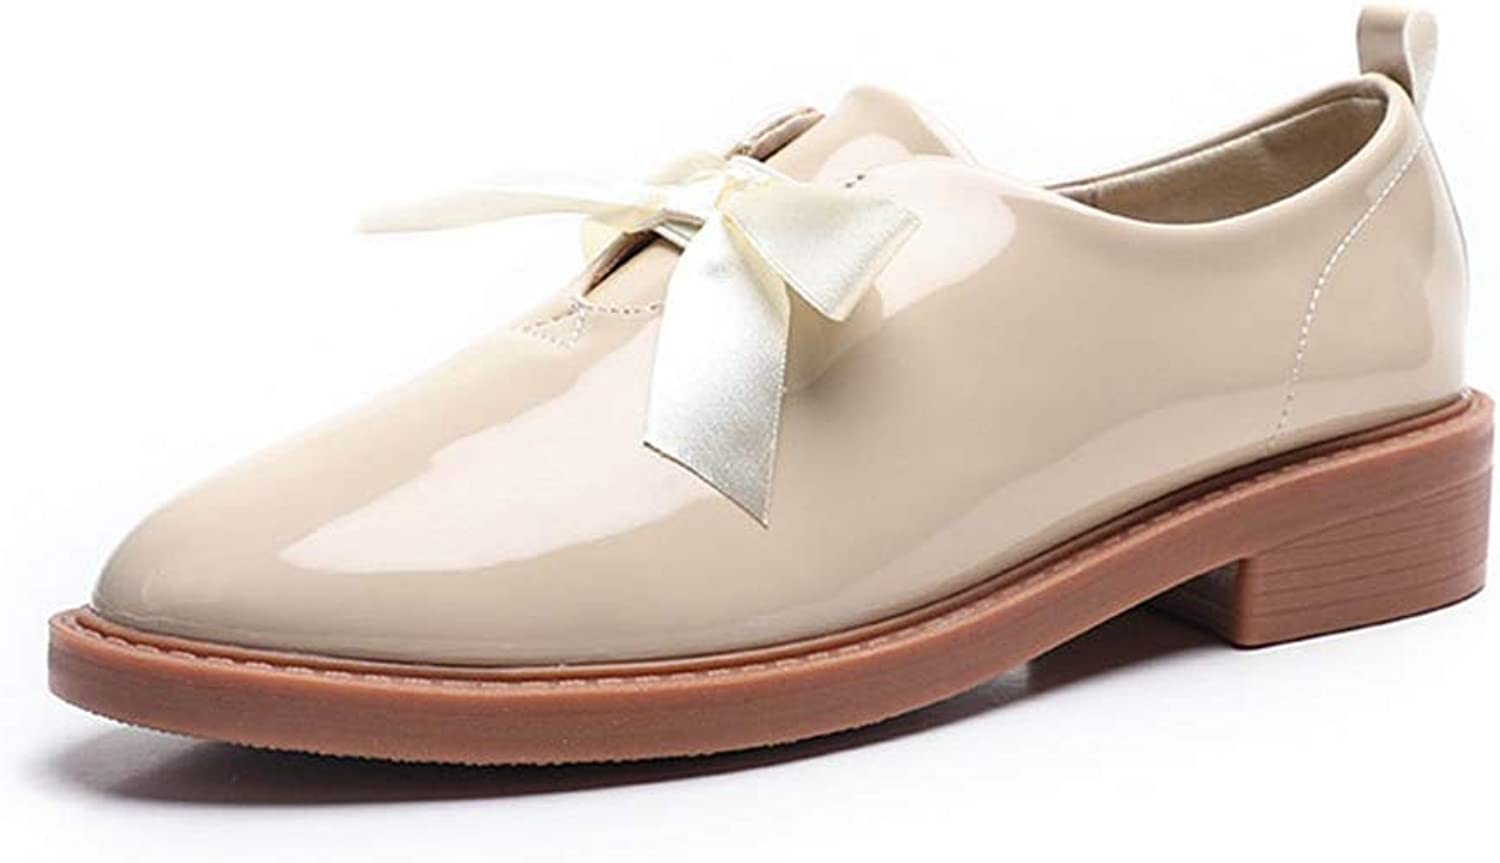 F-OXMY Women's Shiny Penny Loafer Comfort Casual Slip On Dress shoes Vintage Bowknot Oxfords shoes